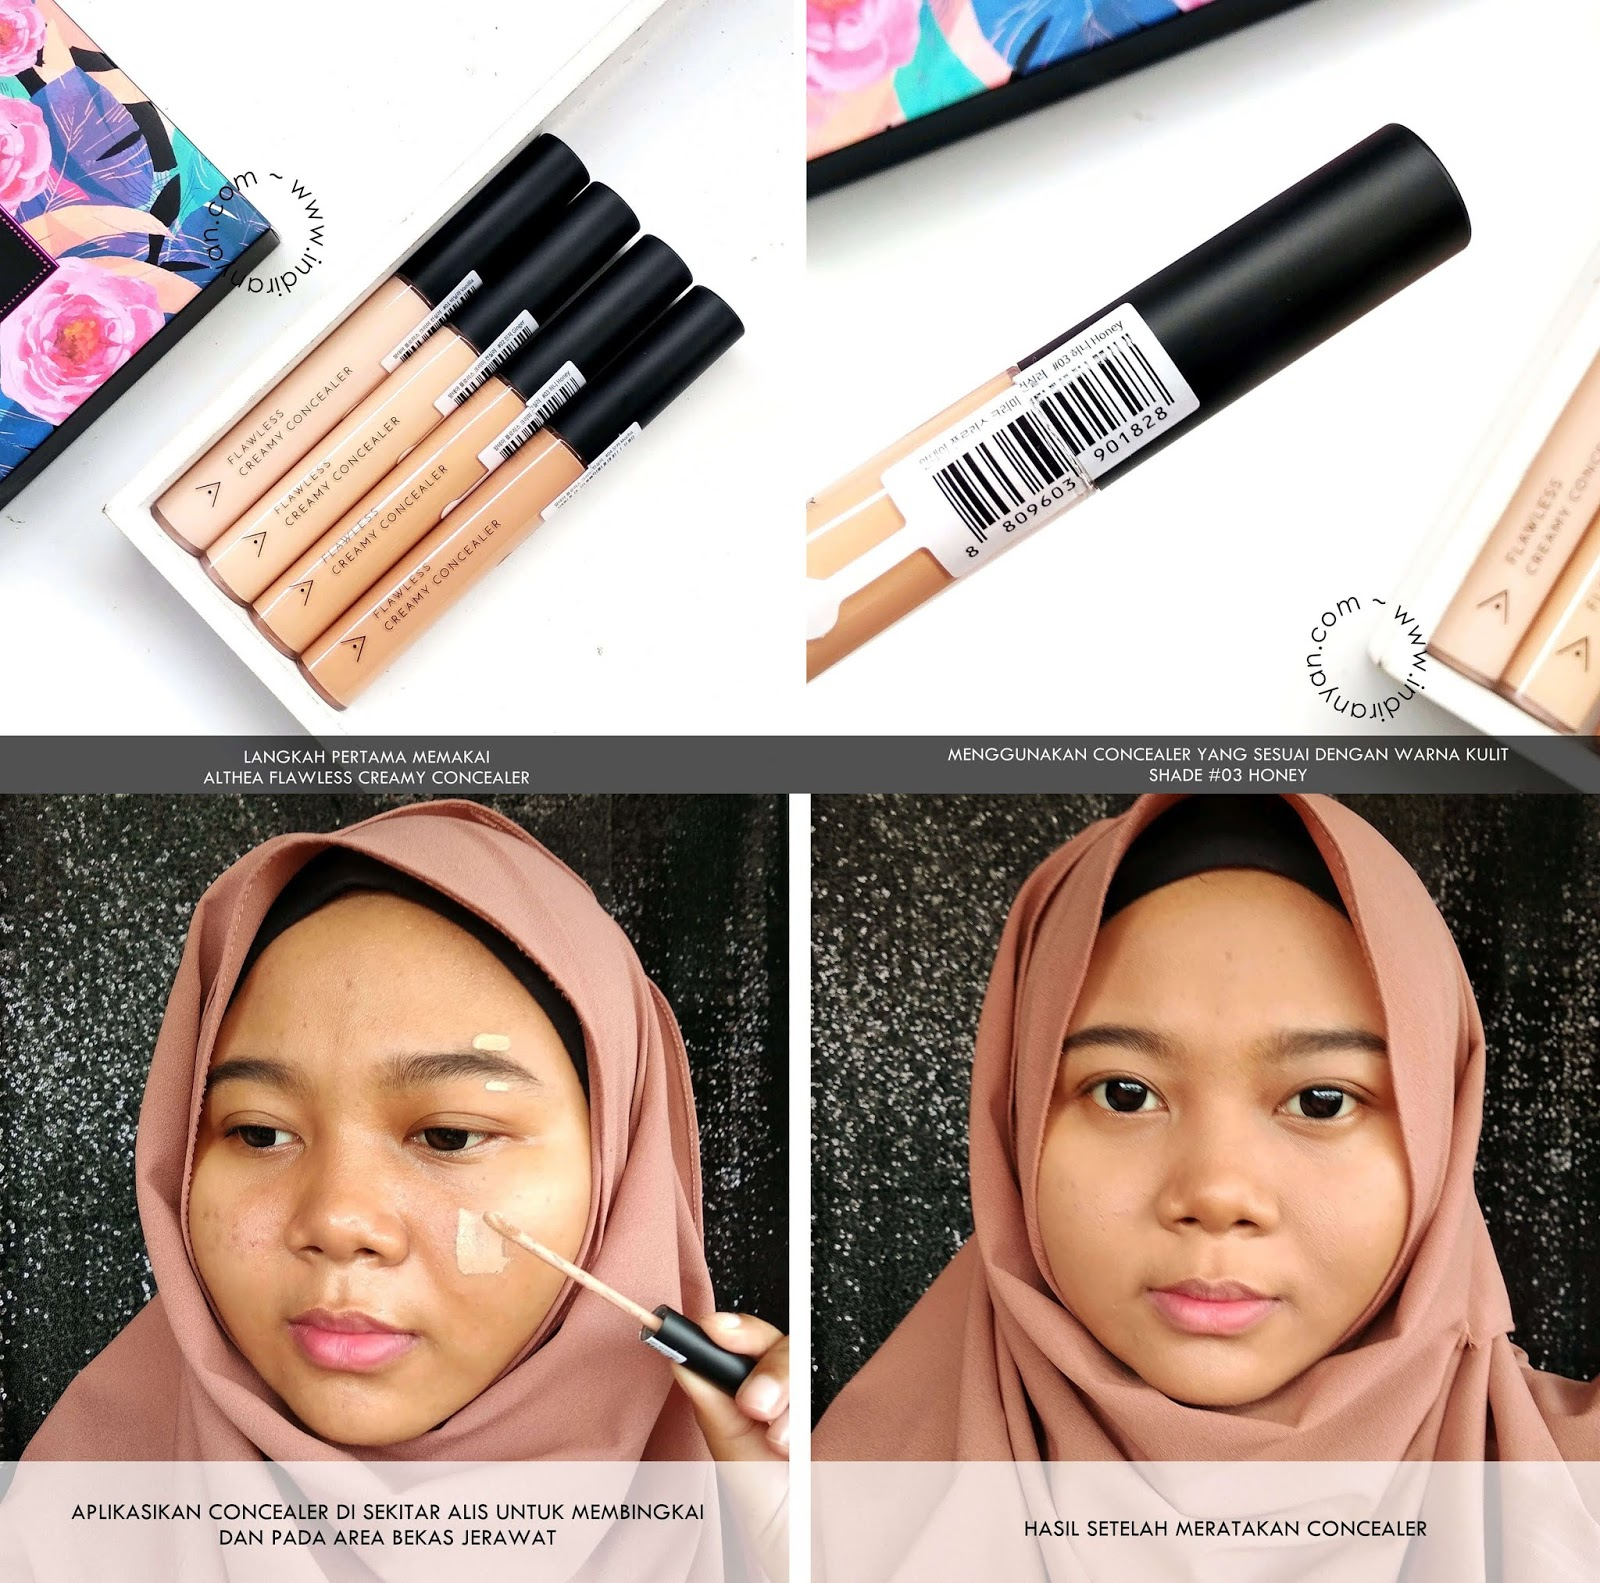 althea-flawless-creamy-concealer